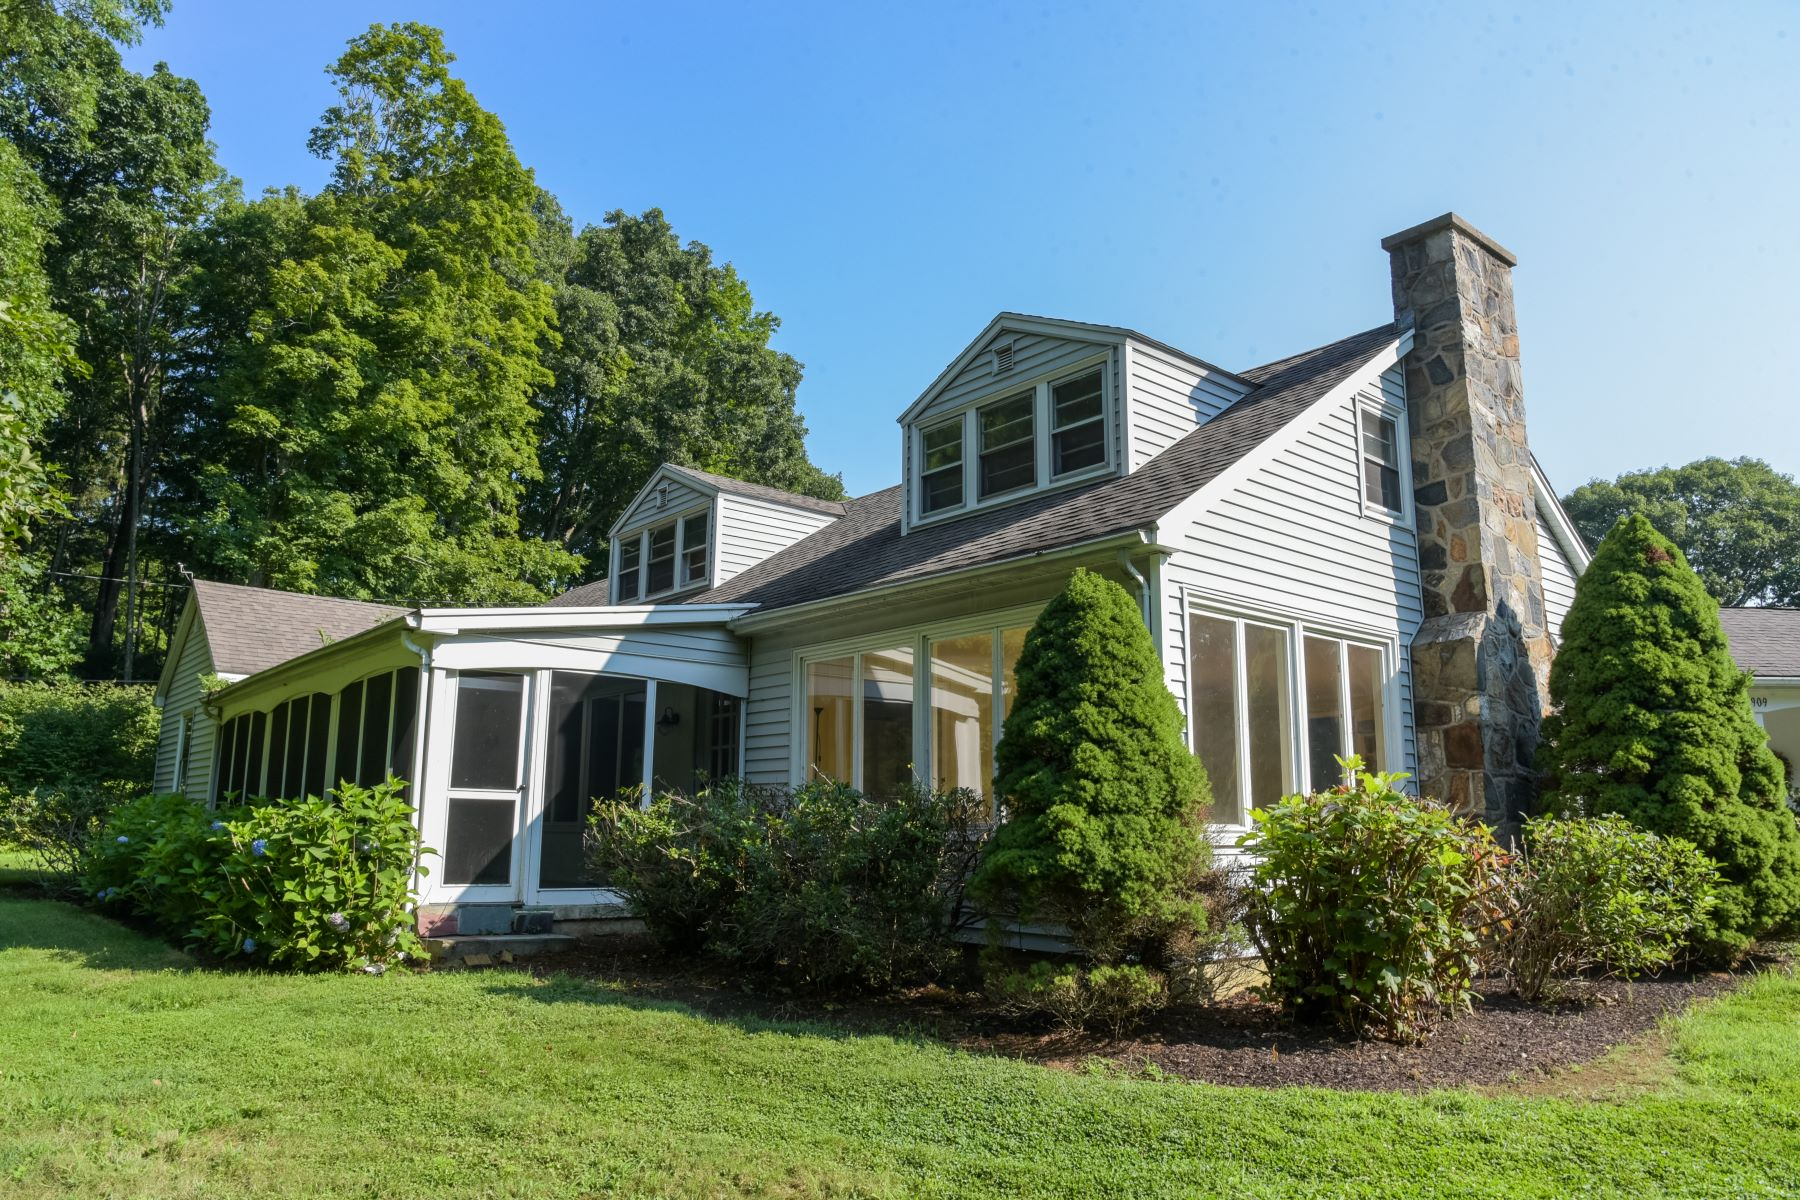 Single Family Home for Sale at 909 Goose Lane 909 Goose Lane Guilford, Connecticut 06437 United States